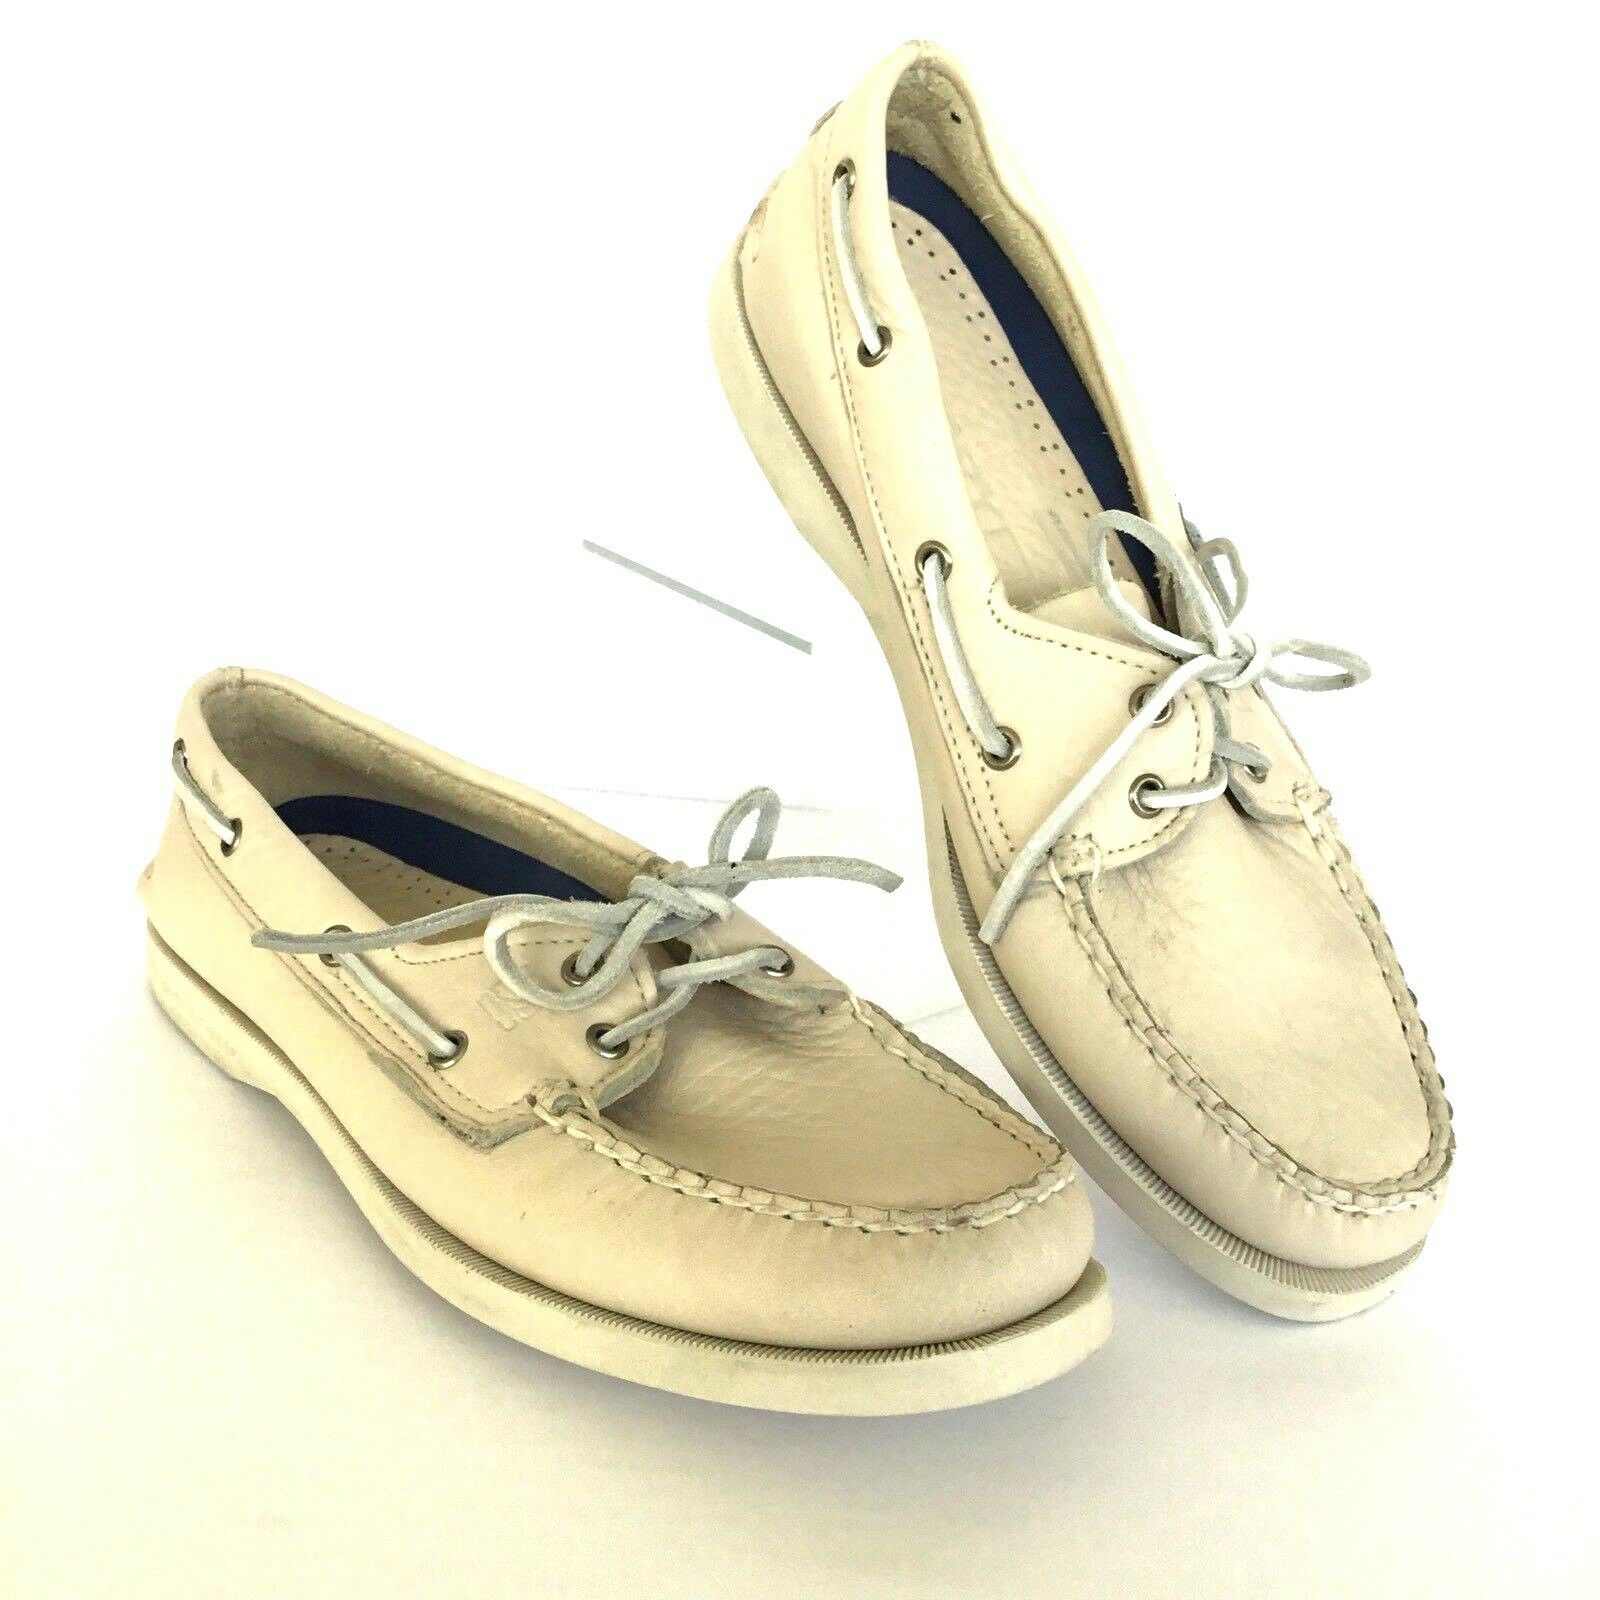 Sperry Top Sider Deck Schuhes Damens 9.5 M Ivory Leder Sneakers Yacht NEU 129